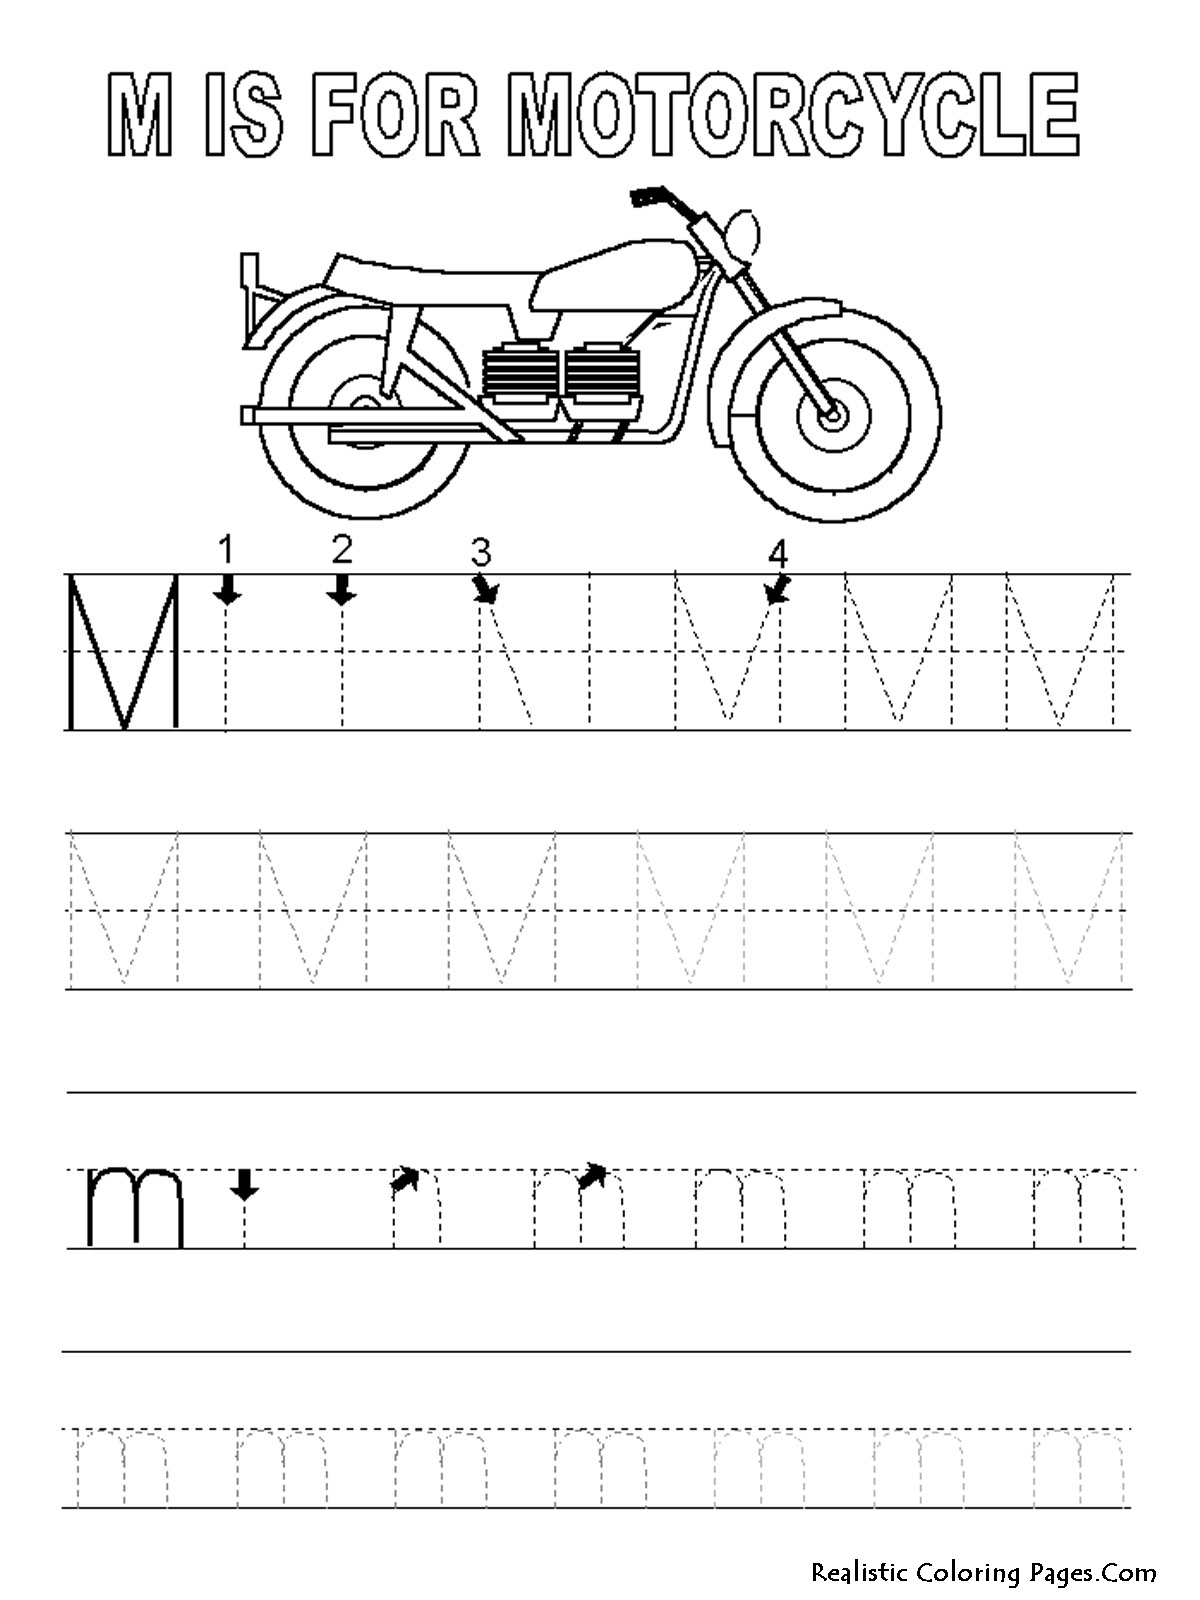 m letters alphabet coloring pages realistic coloring pages. Black Bedroom Furniture Sets. Home Design Ideas